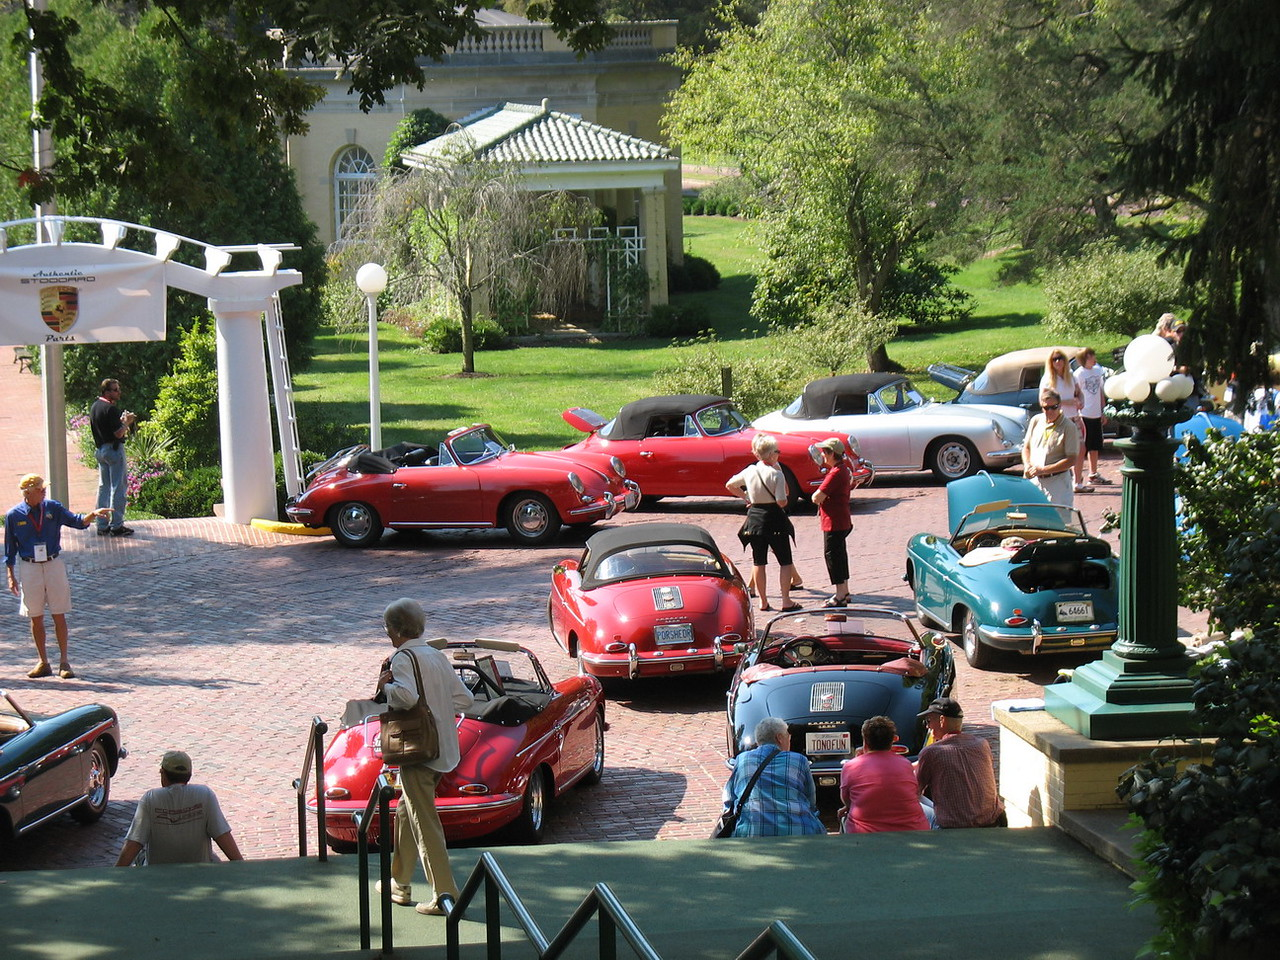 The car show. Our car is the closest to the white portal.